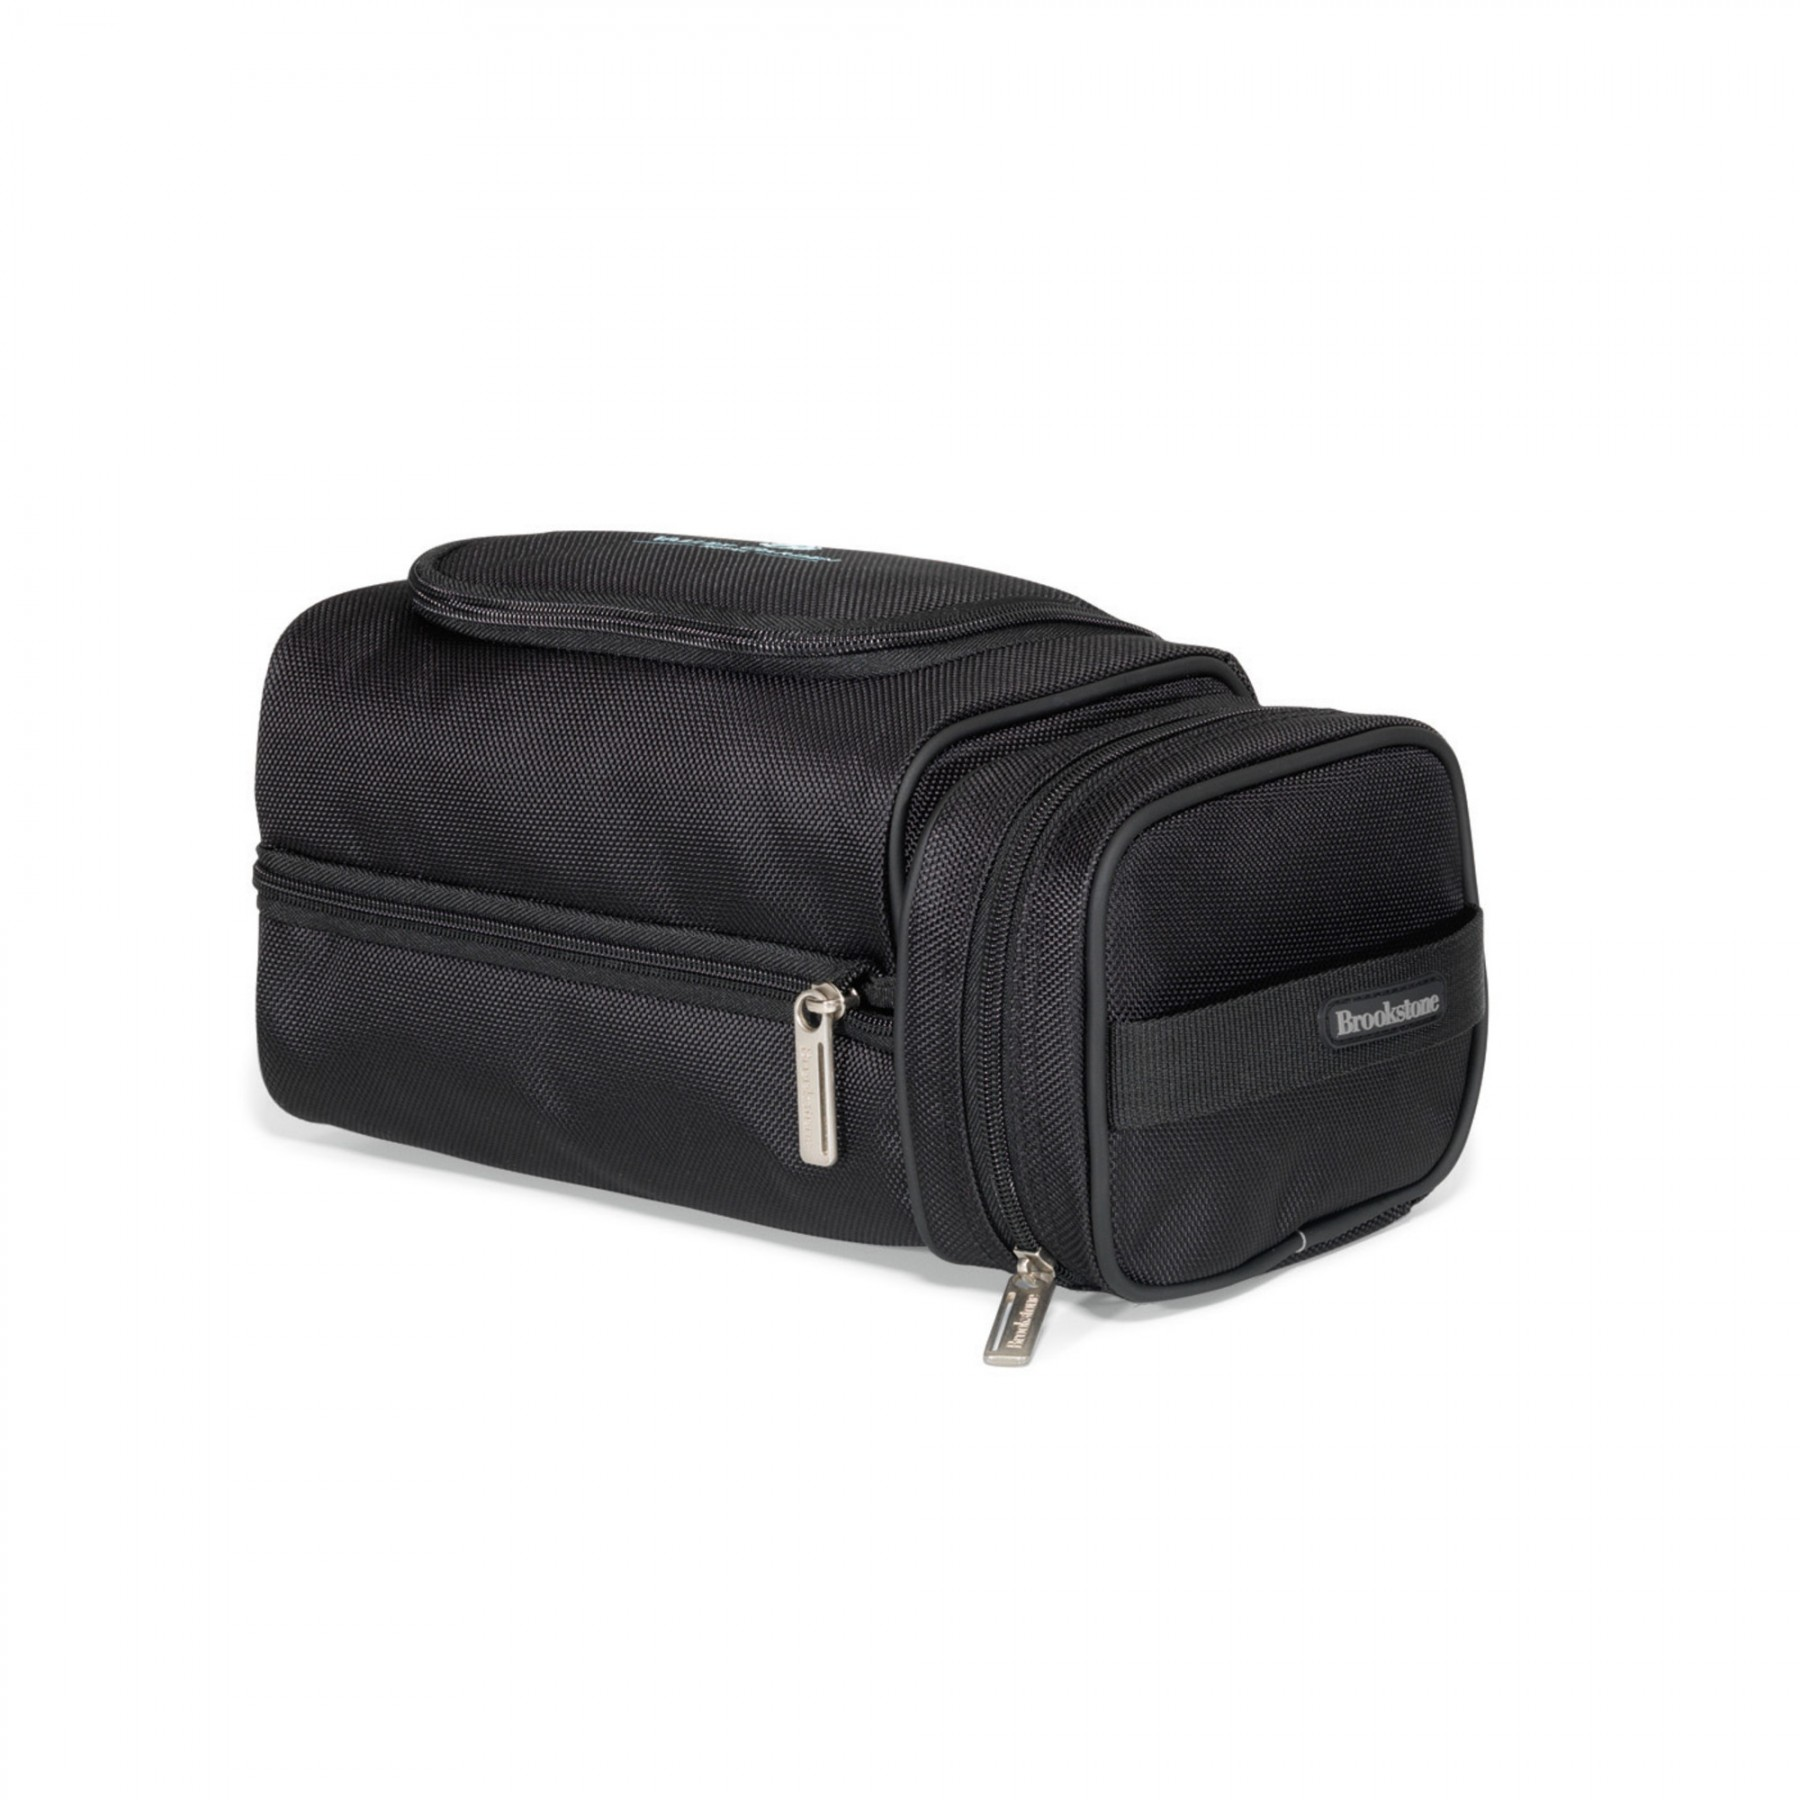 Brookstone Performance Amenity Case